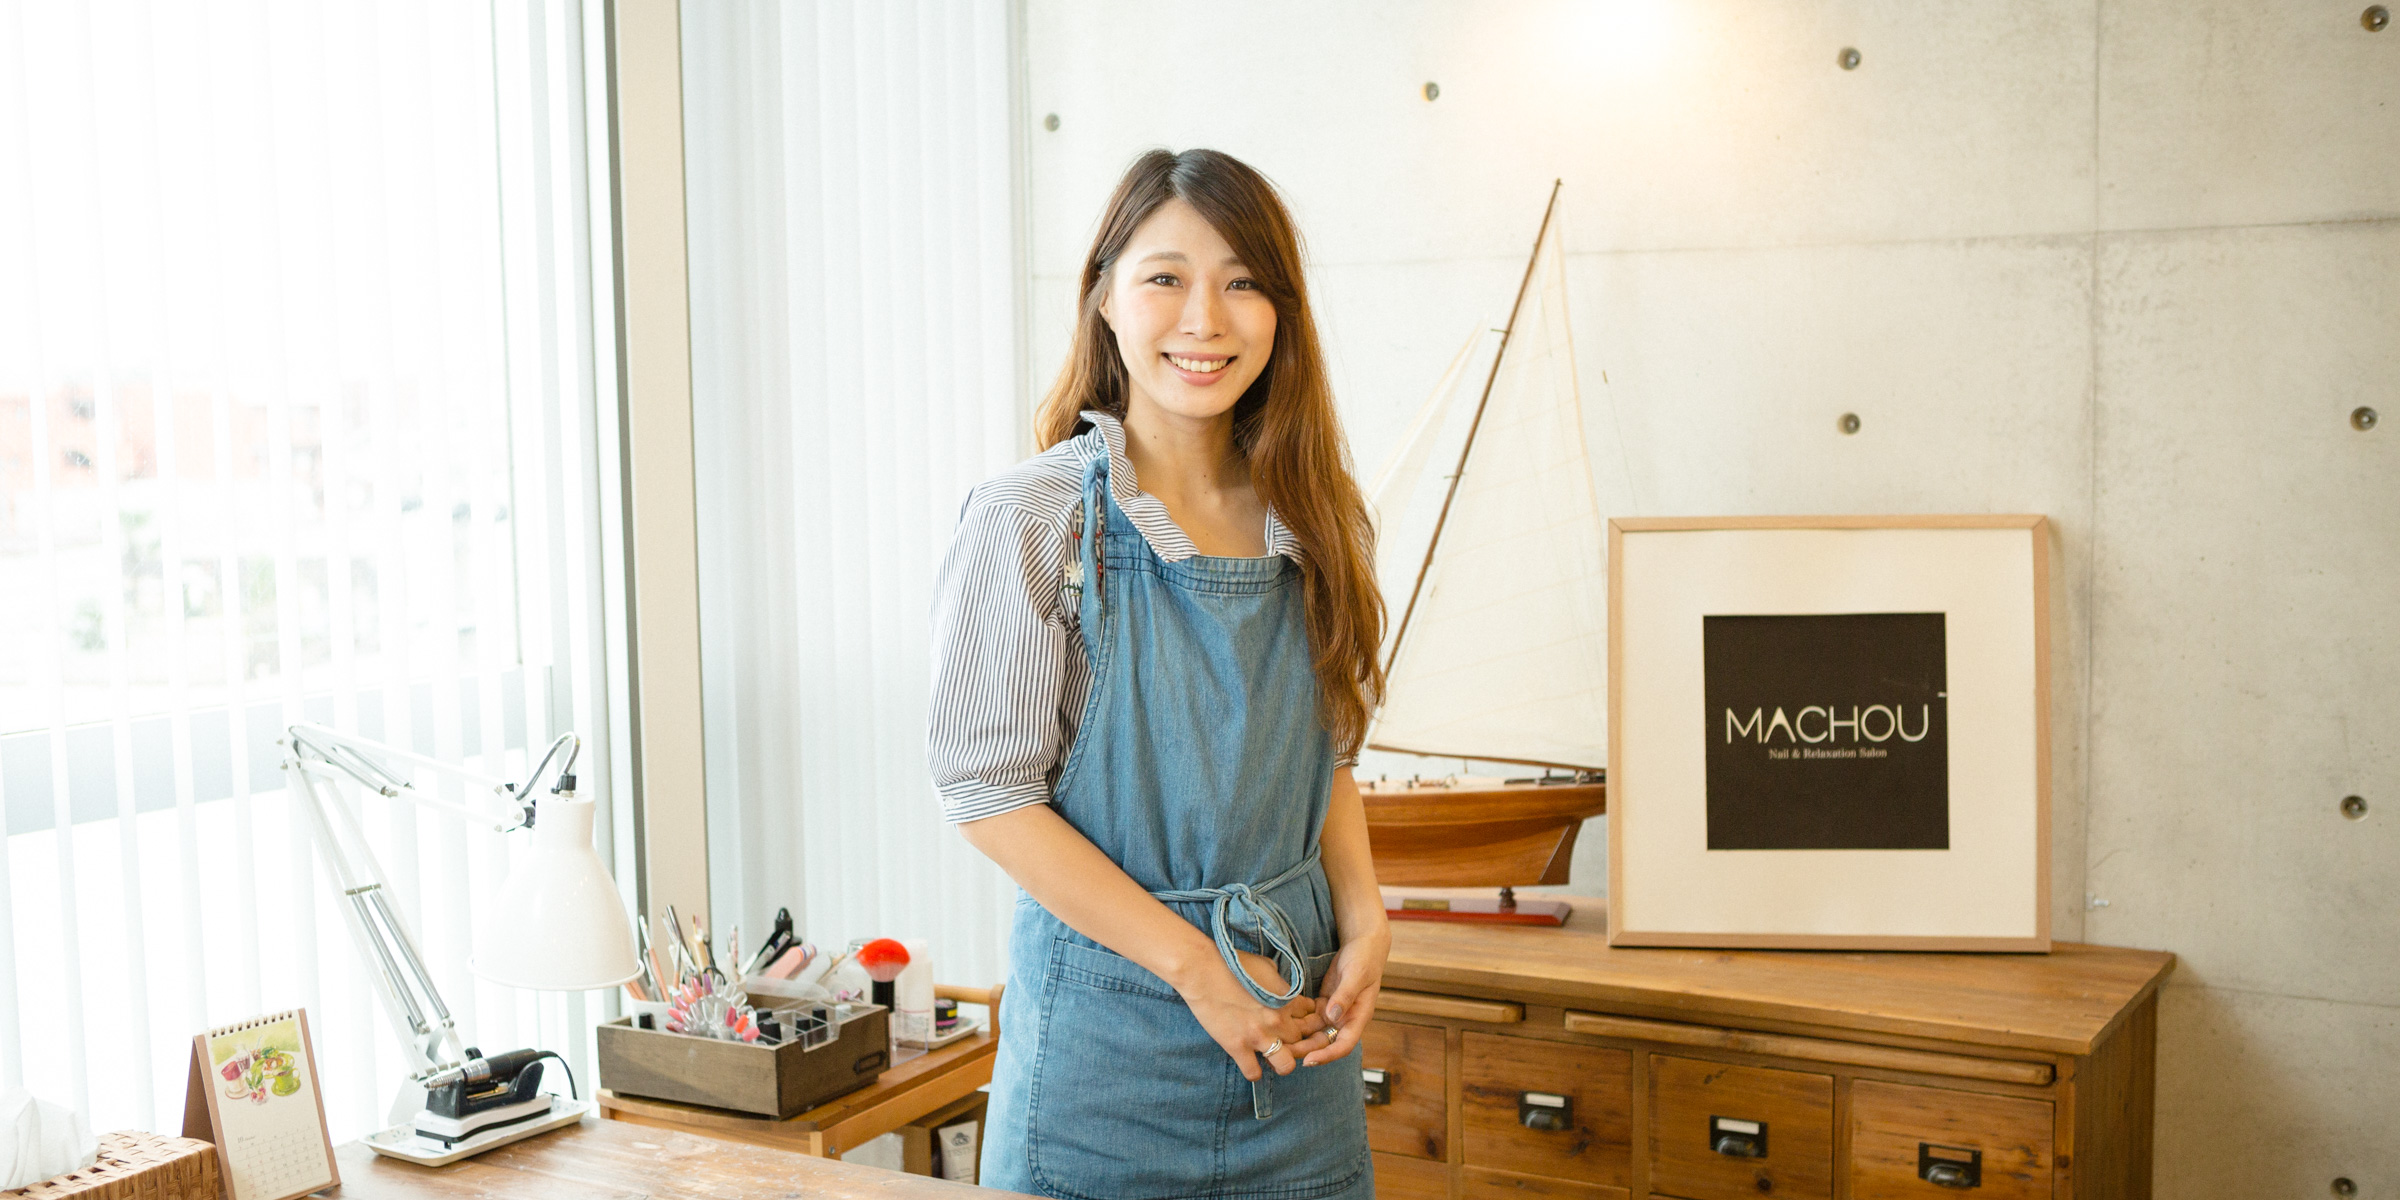 MACHOU(マシュー)Nail & Relaxation Salon